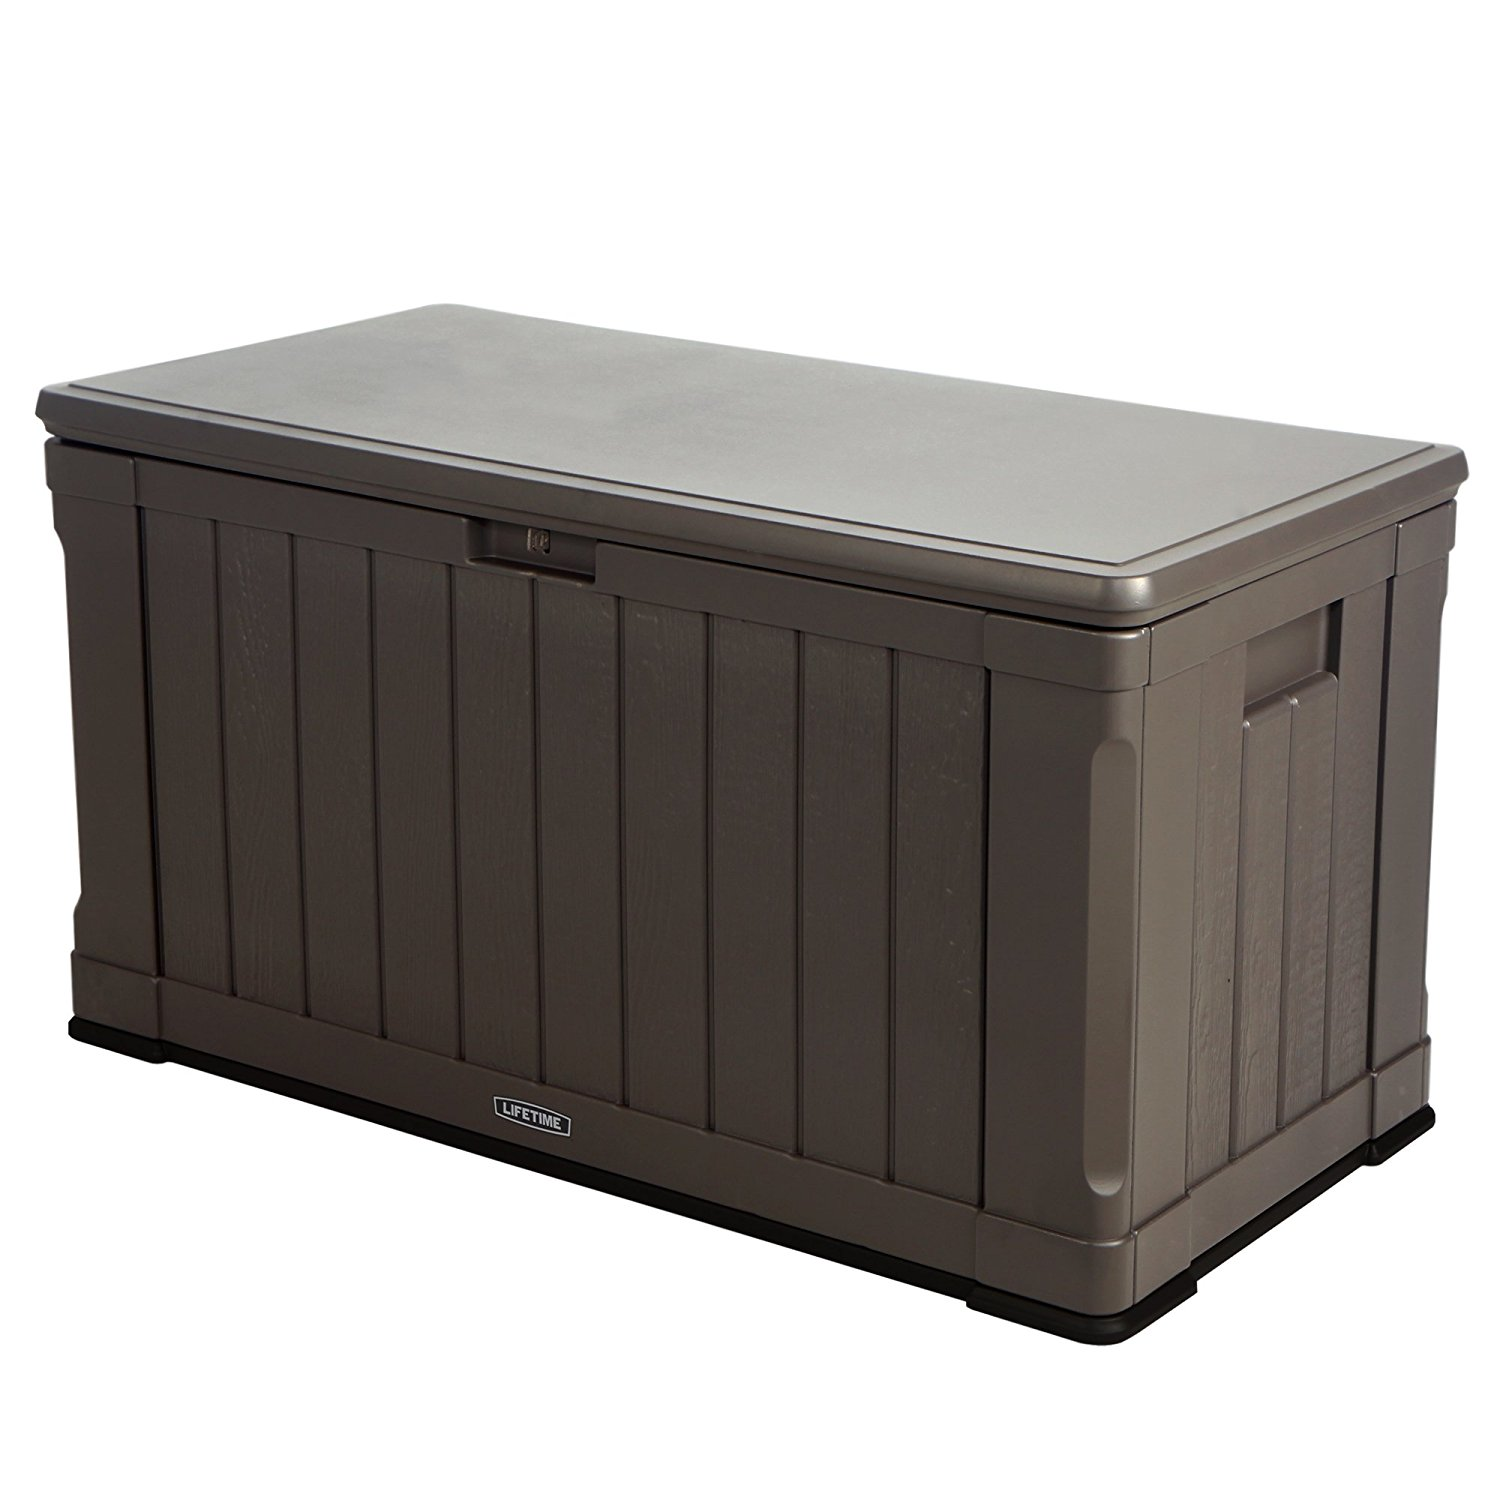 Lifetime Outdoor Storage Box